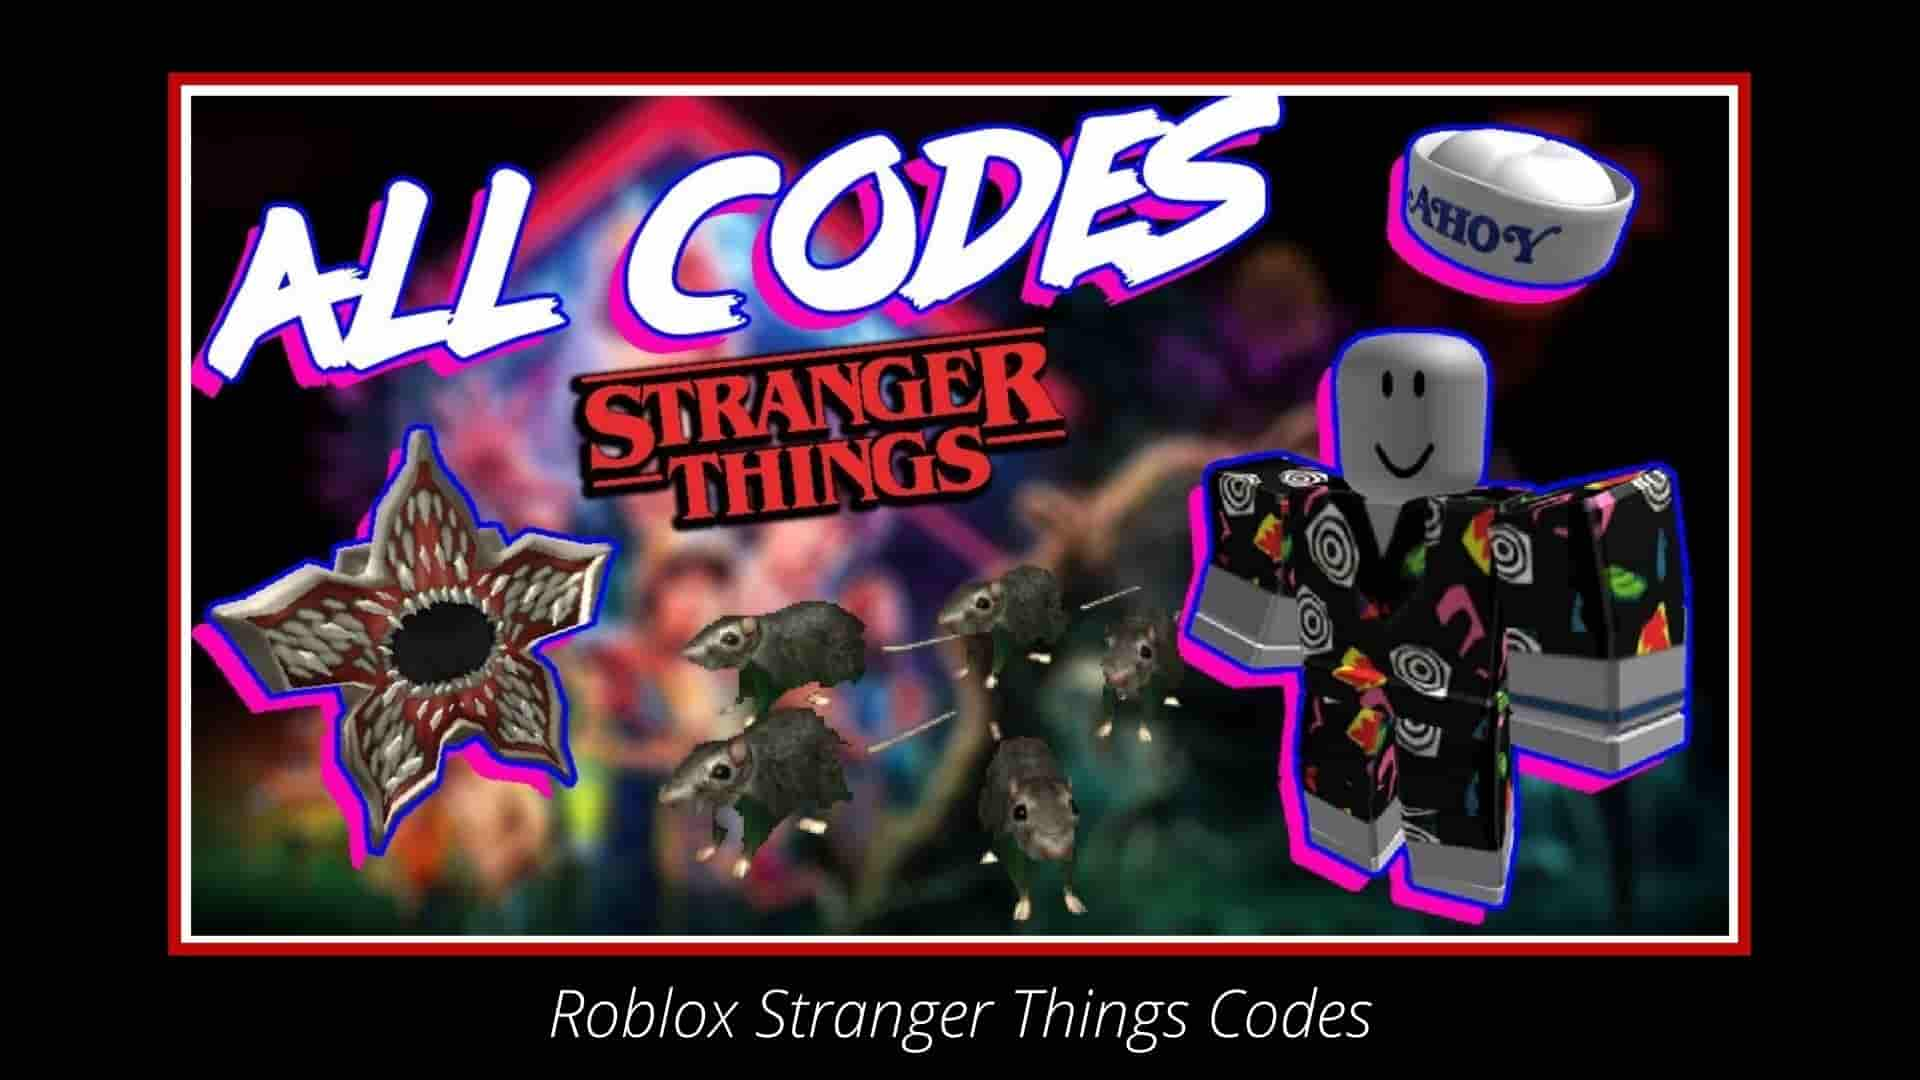 Roblox Stranger Things Codes